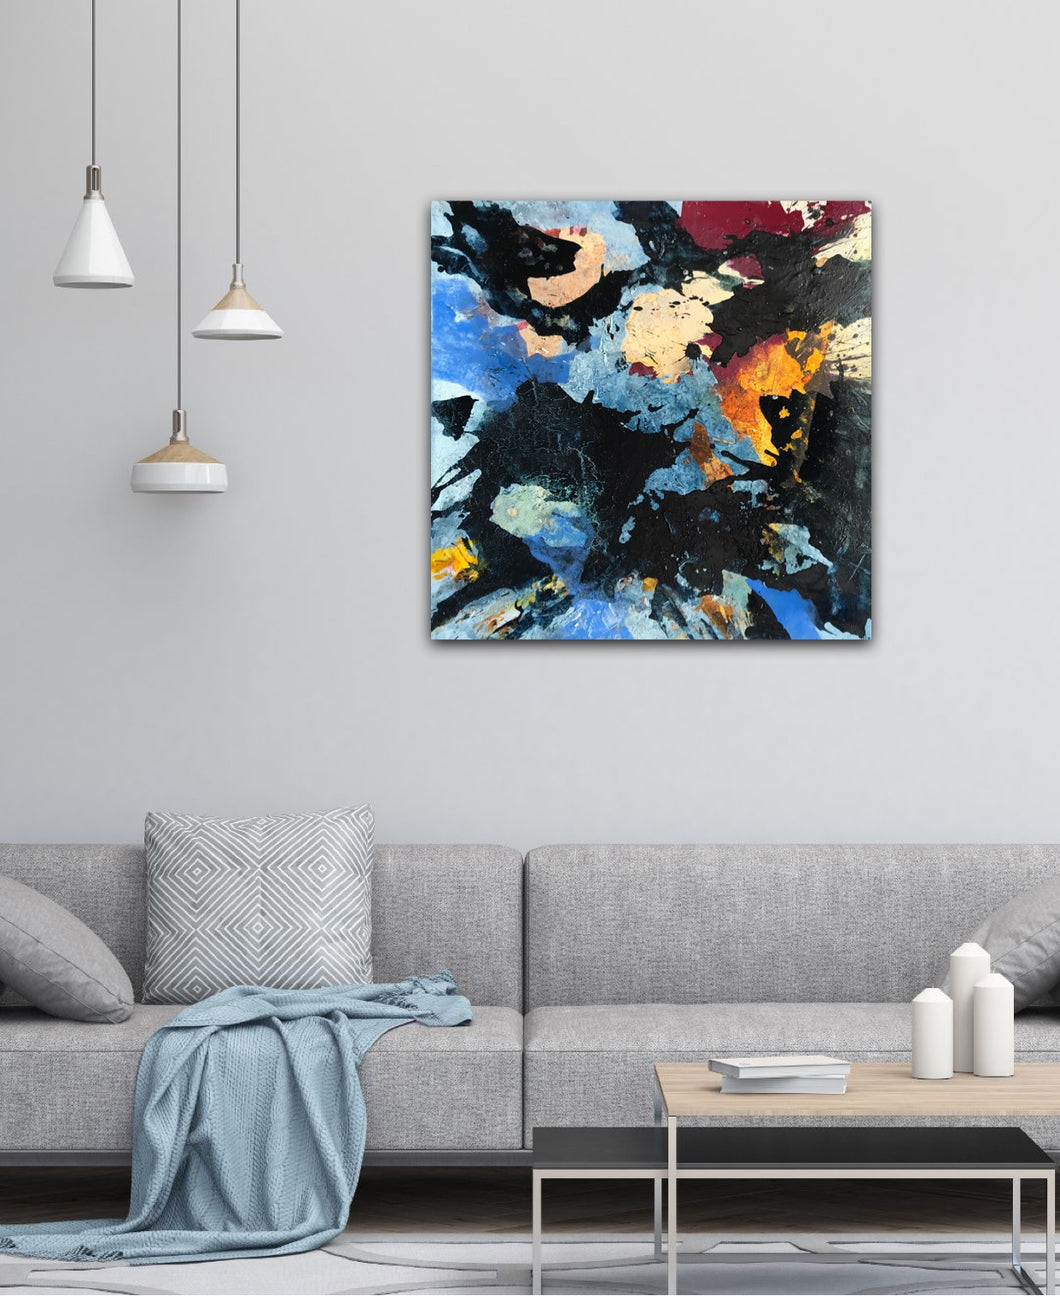 Abstract expressionist art in a contemporary living room with a grey couch  - modern artwork